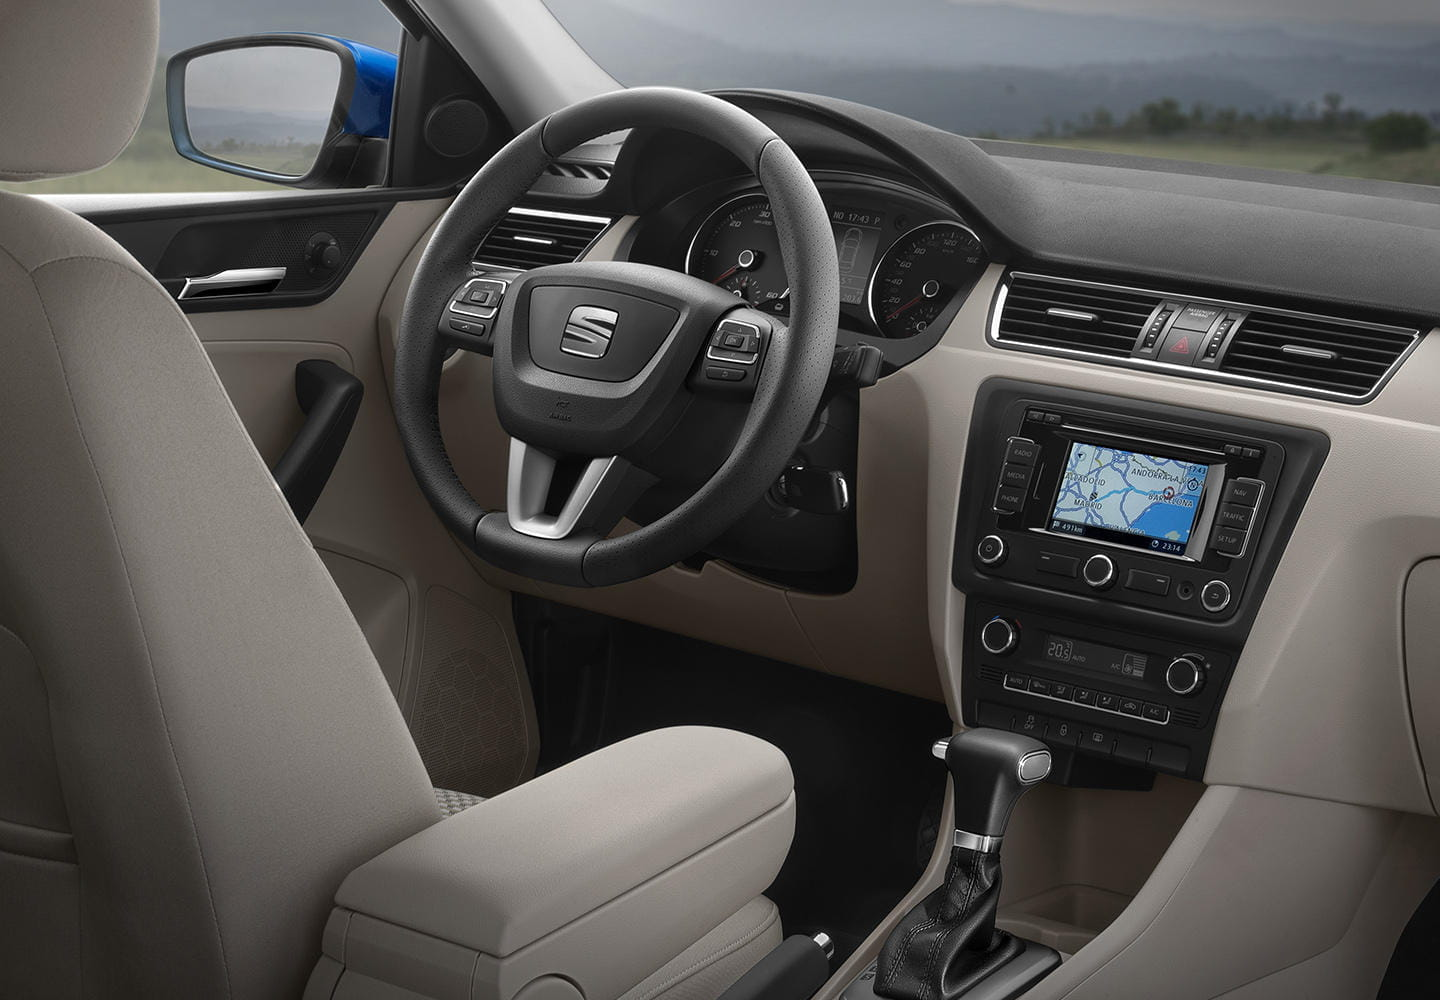 seat toledo toledo tdi precios prueba ficha t cnica y fotos. Black Bedroom Furniture Sets. Home Design Ideas